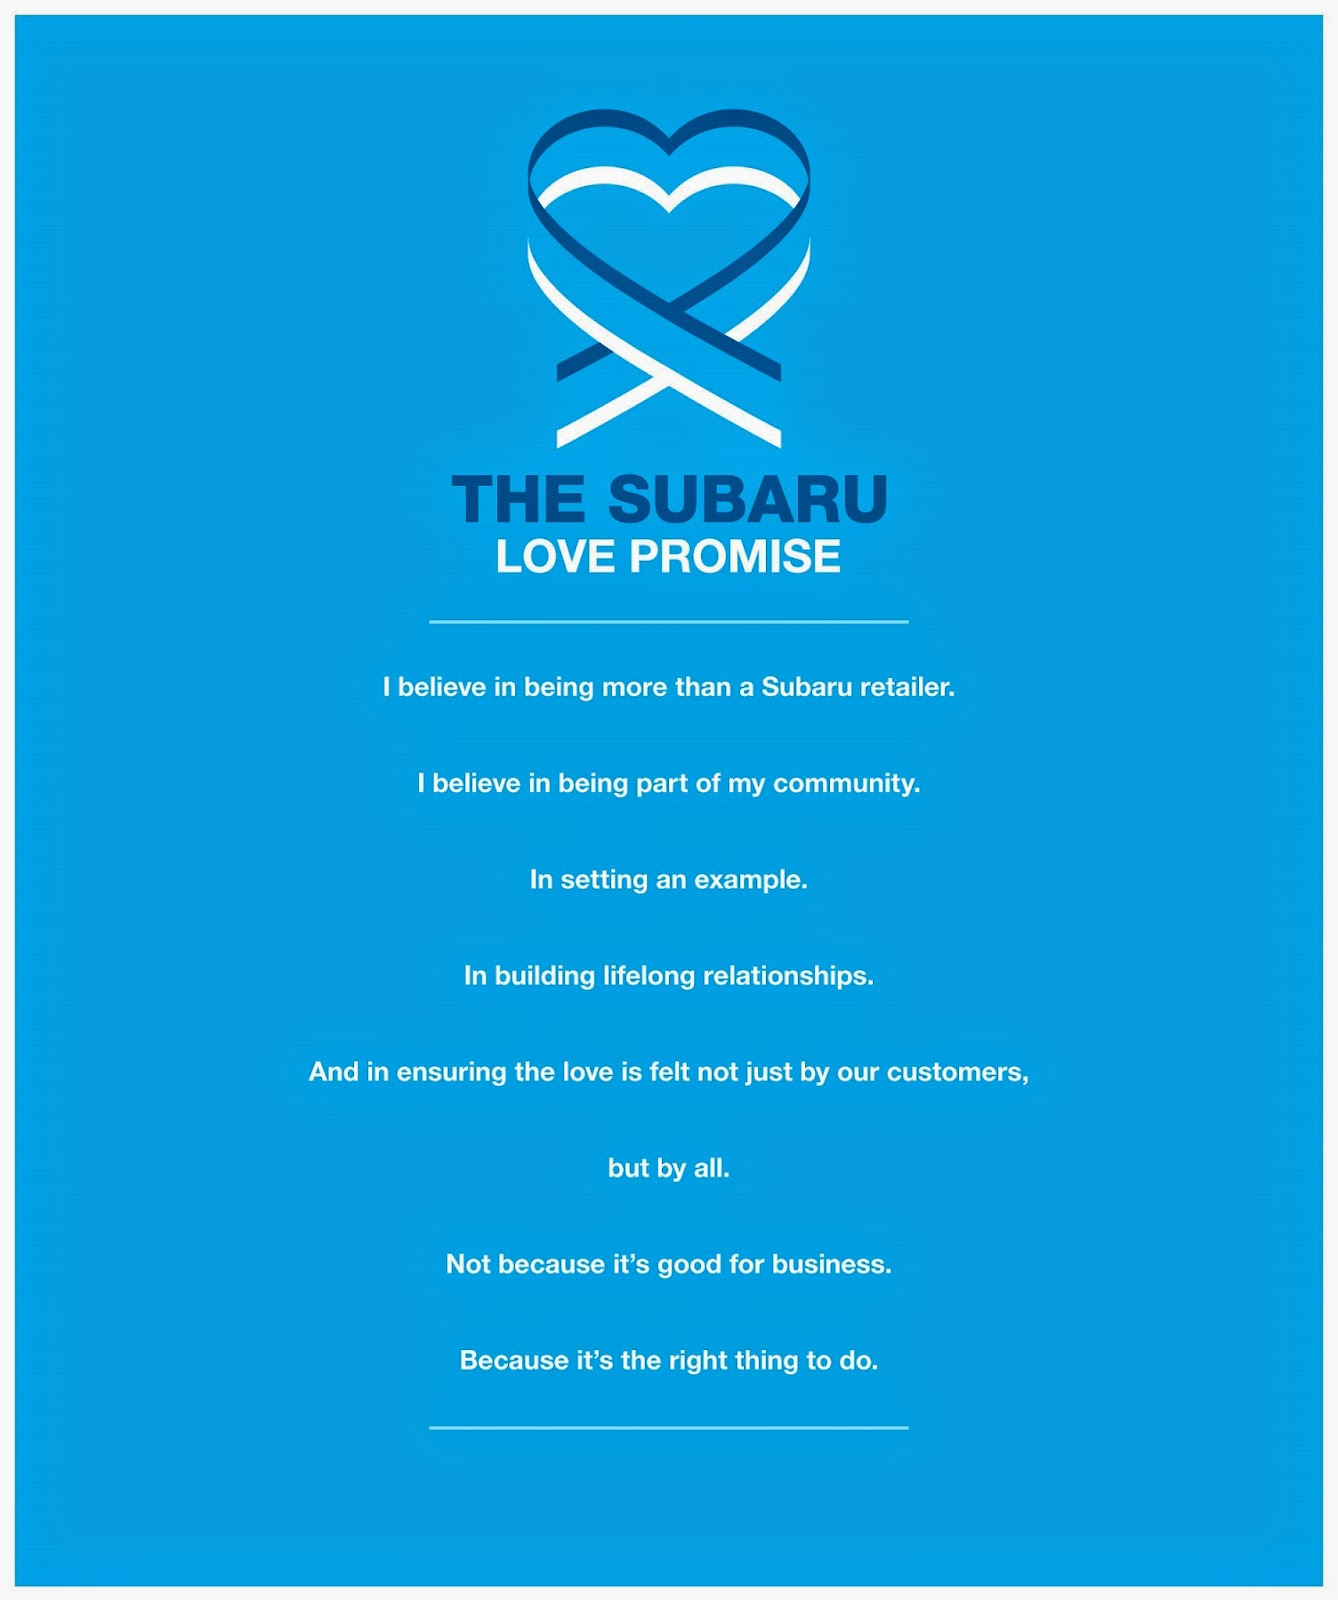 Ferguson Subaru Tulsa >> Ferguson Subaru: Subaru Love Promise | Our Pledge to Greater Tulsa and Green Country